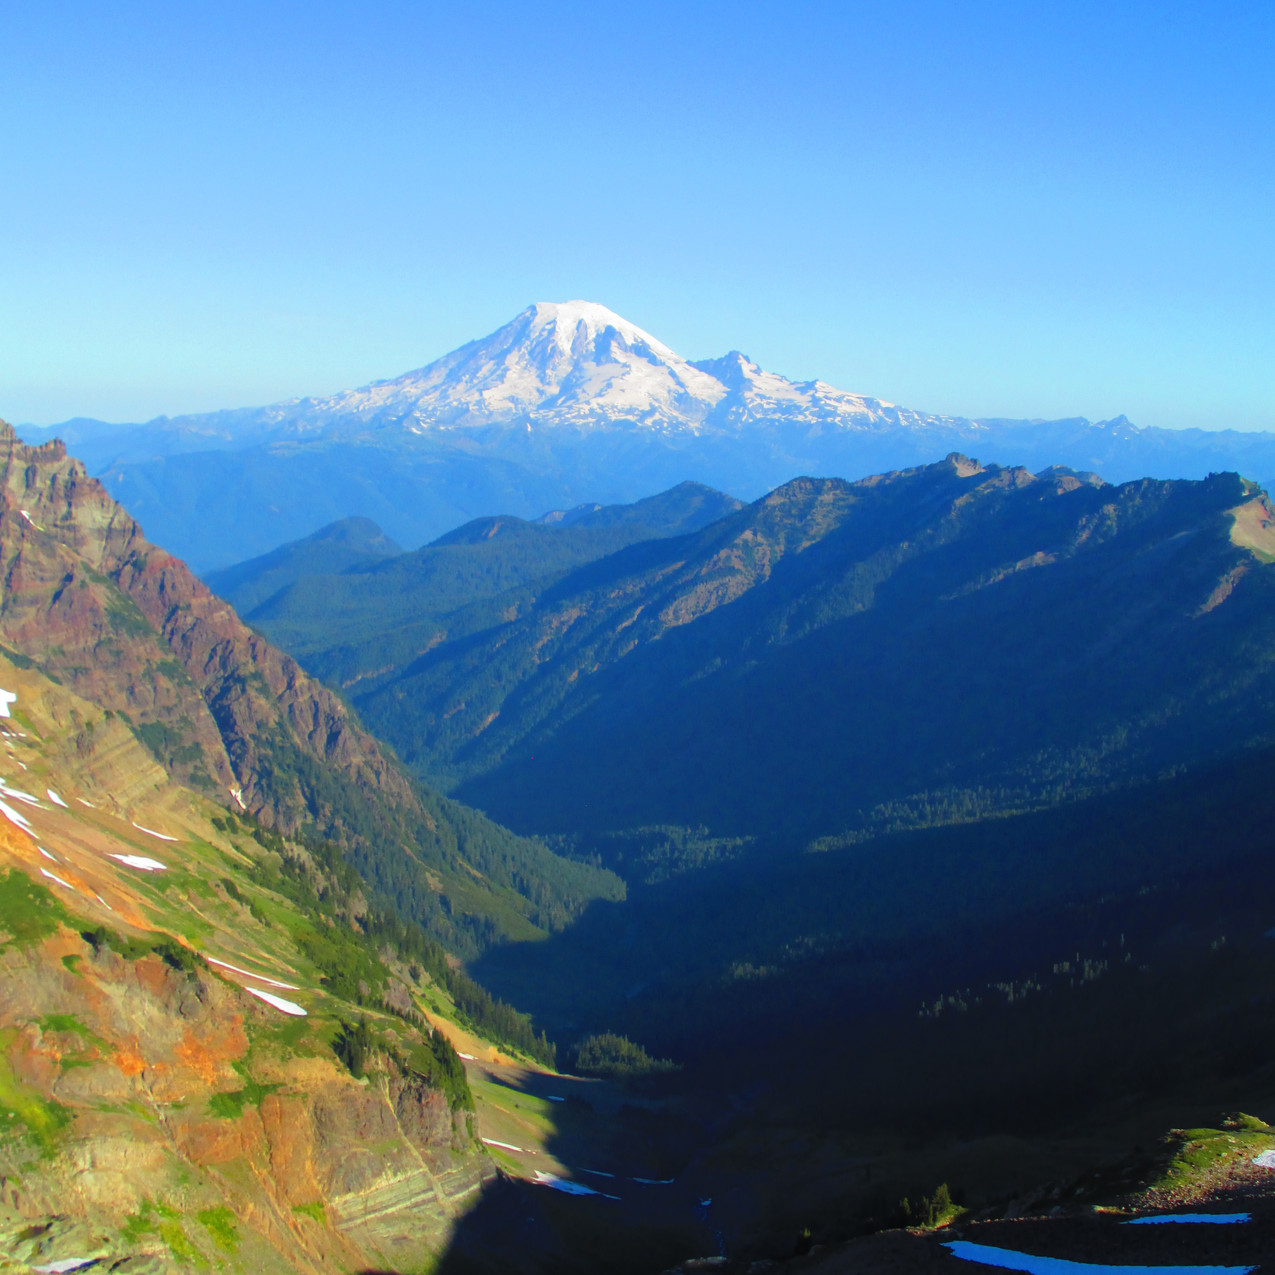 The Goat Rocks has some great views of Mt. Rainier if you are lucky enough to get good weather.